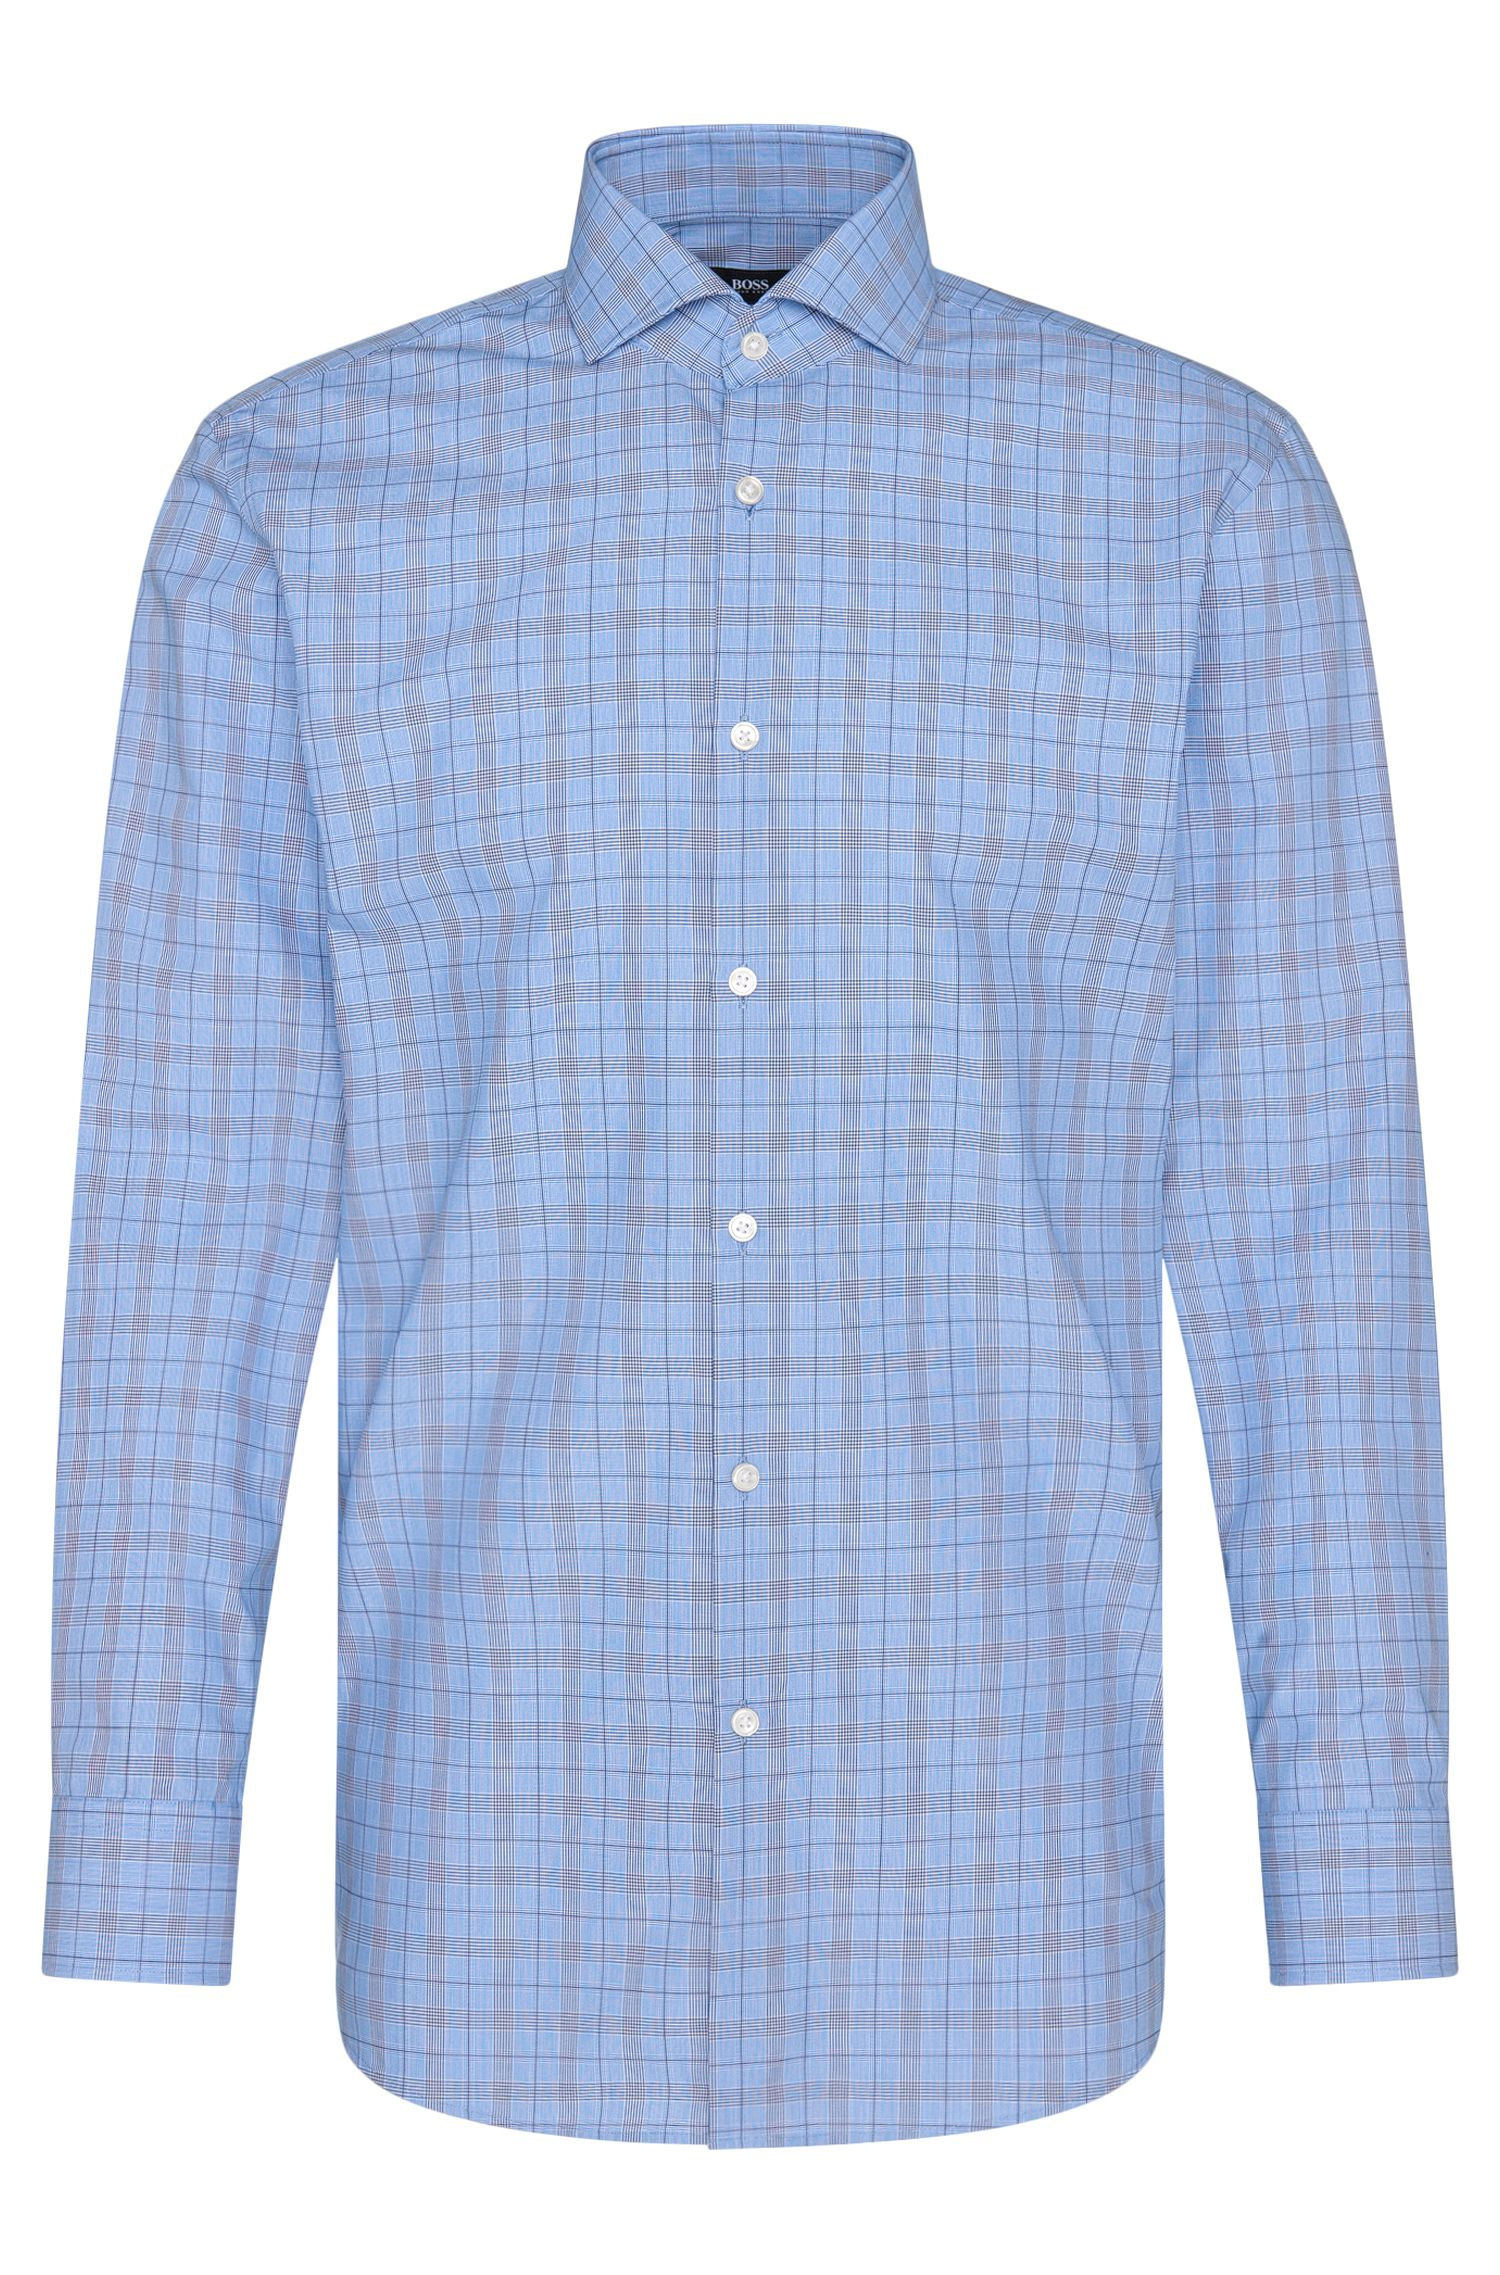 'Mark US' | Sharp Fit, Cotton Patterned Dress Shirt